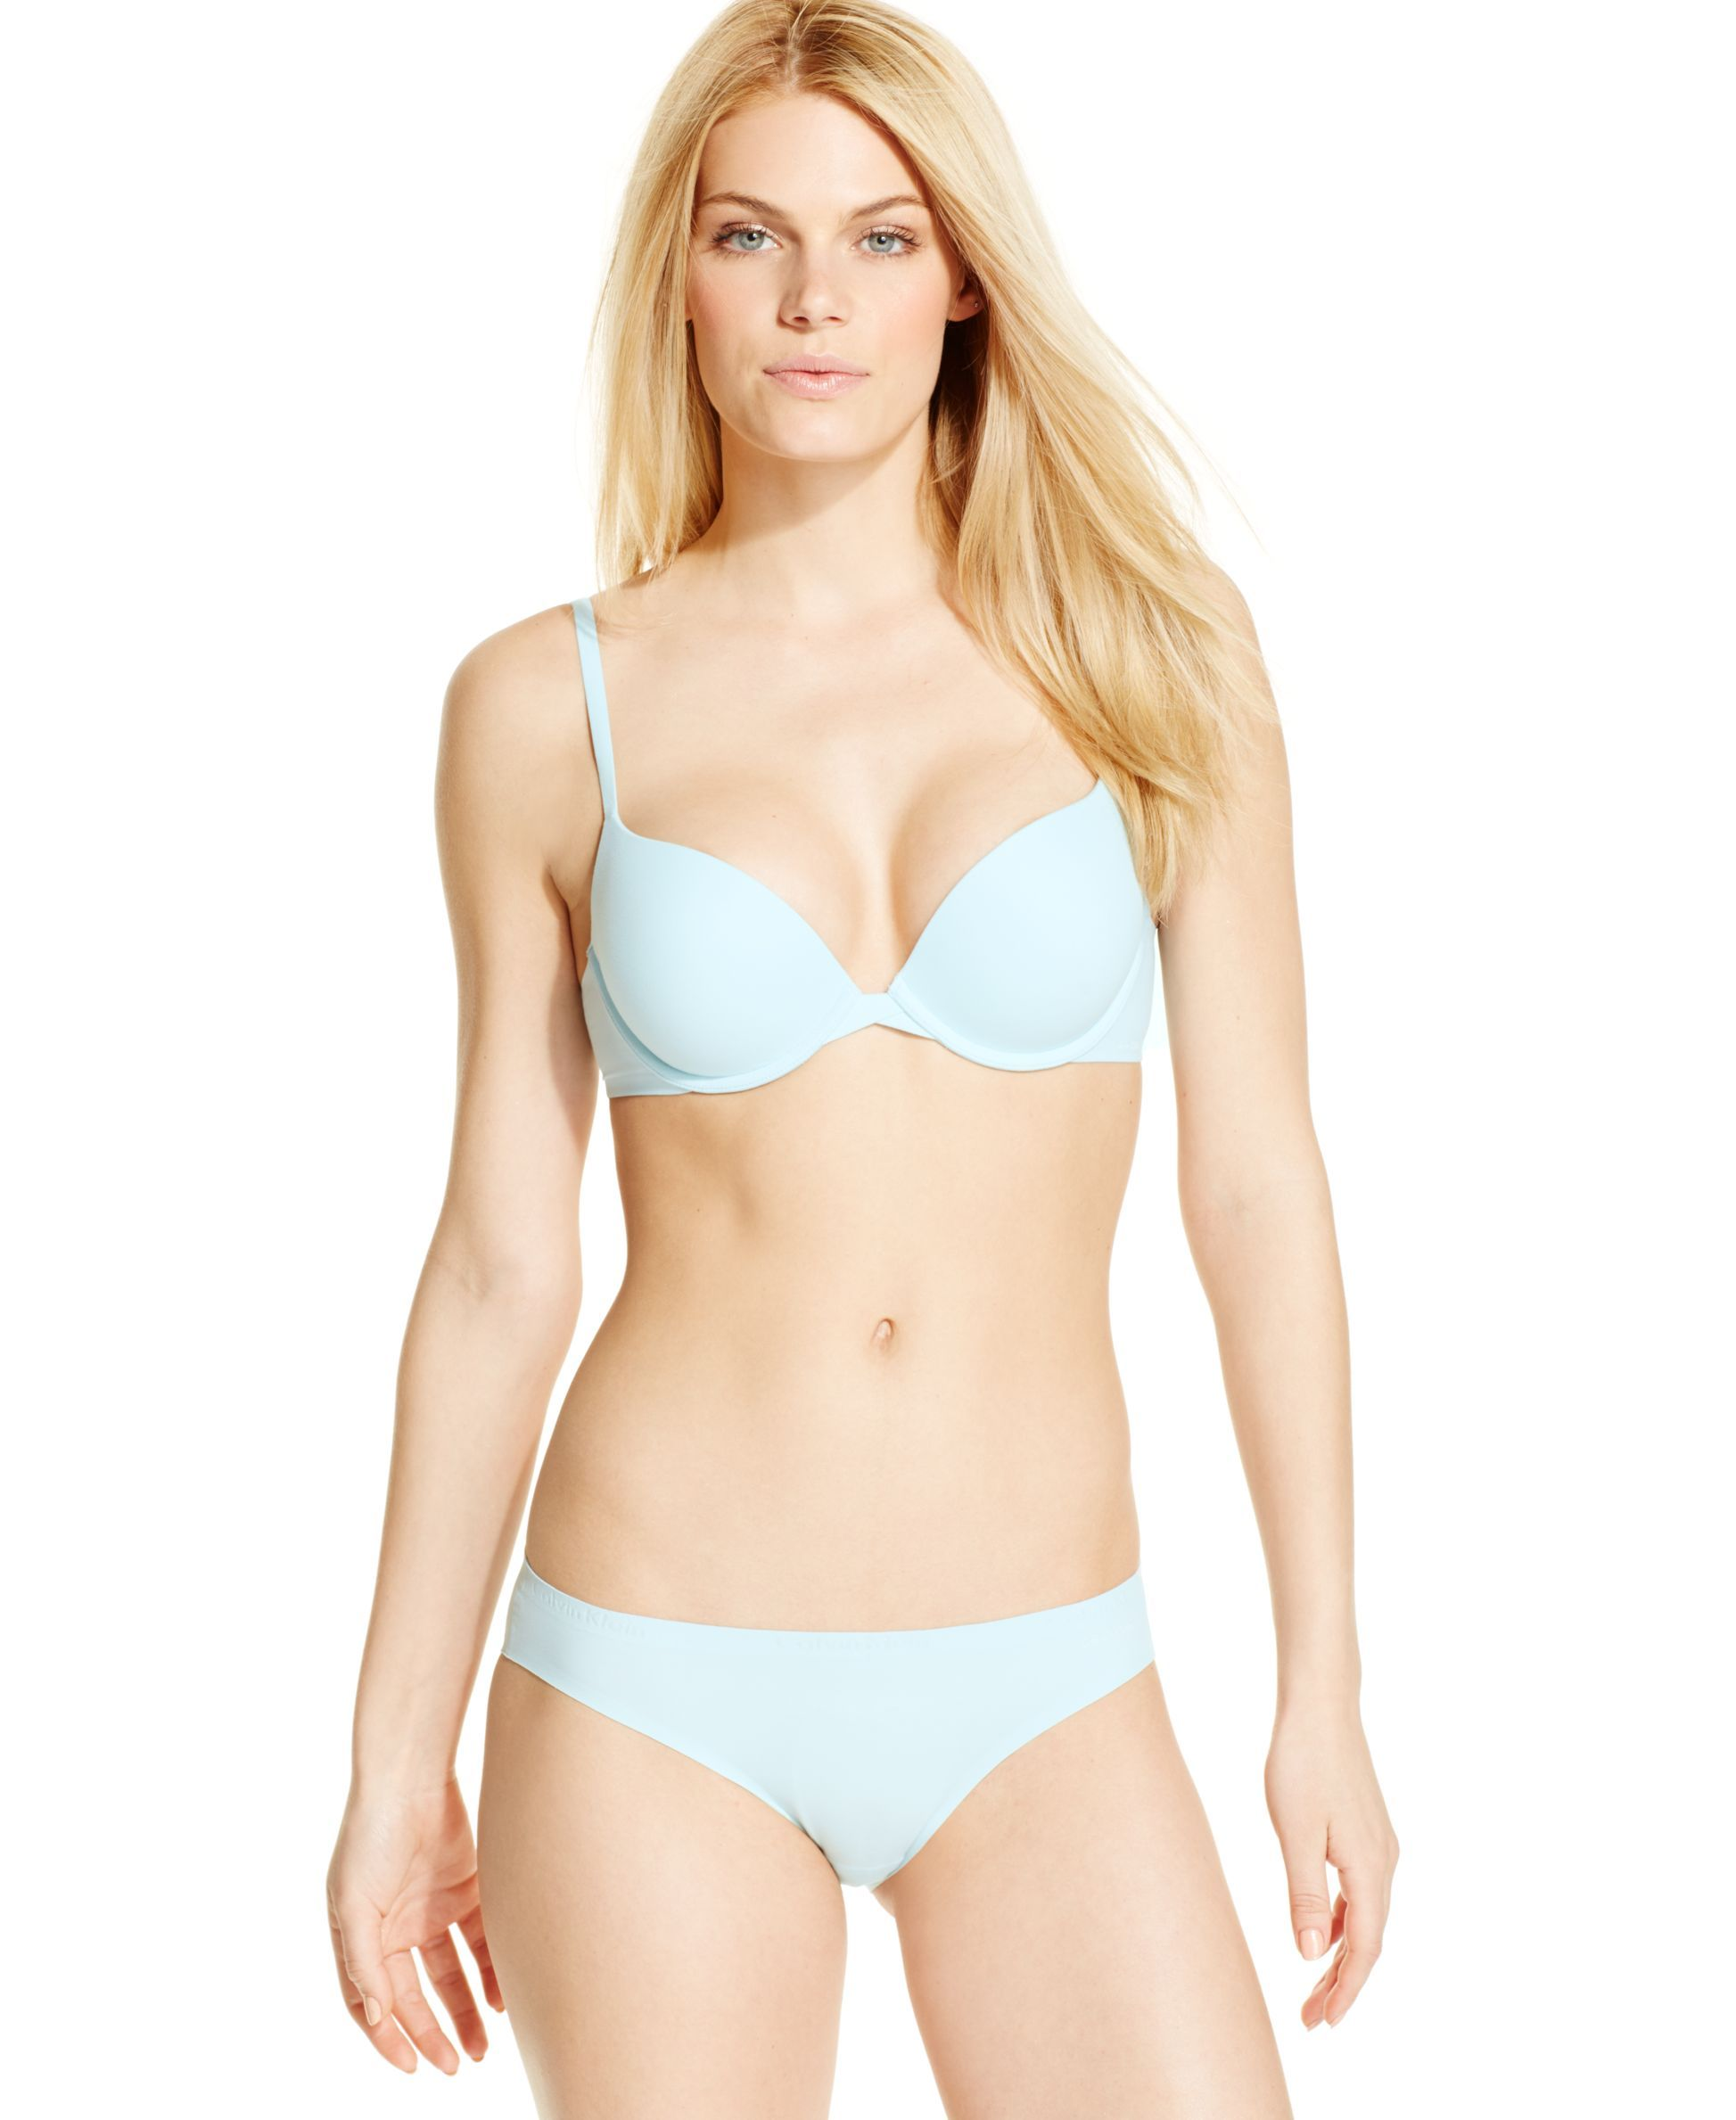 a687a40572a37 Calvin Klein Perfectly Fit Plunge Push Up Bra QF1120